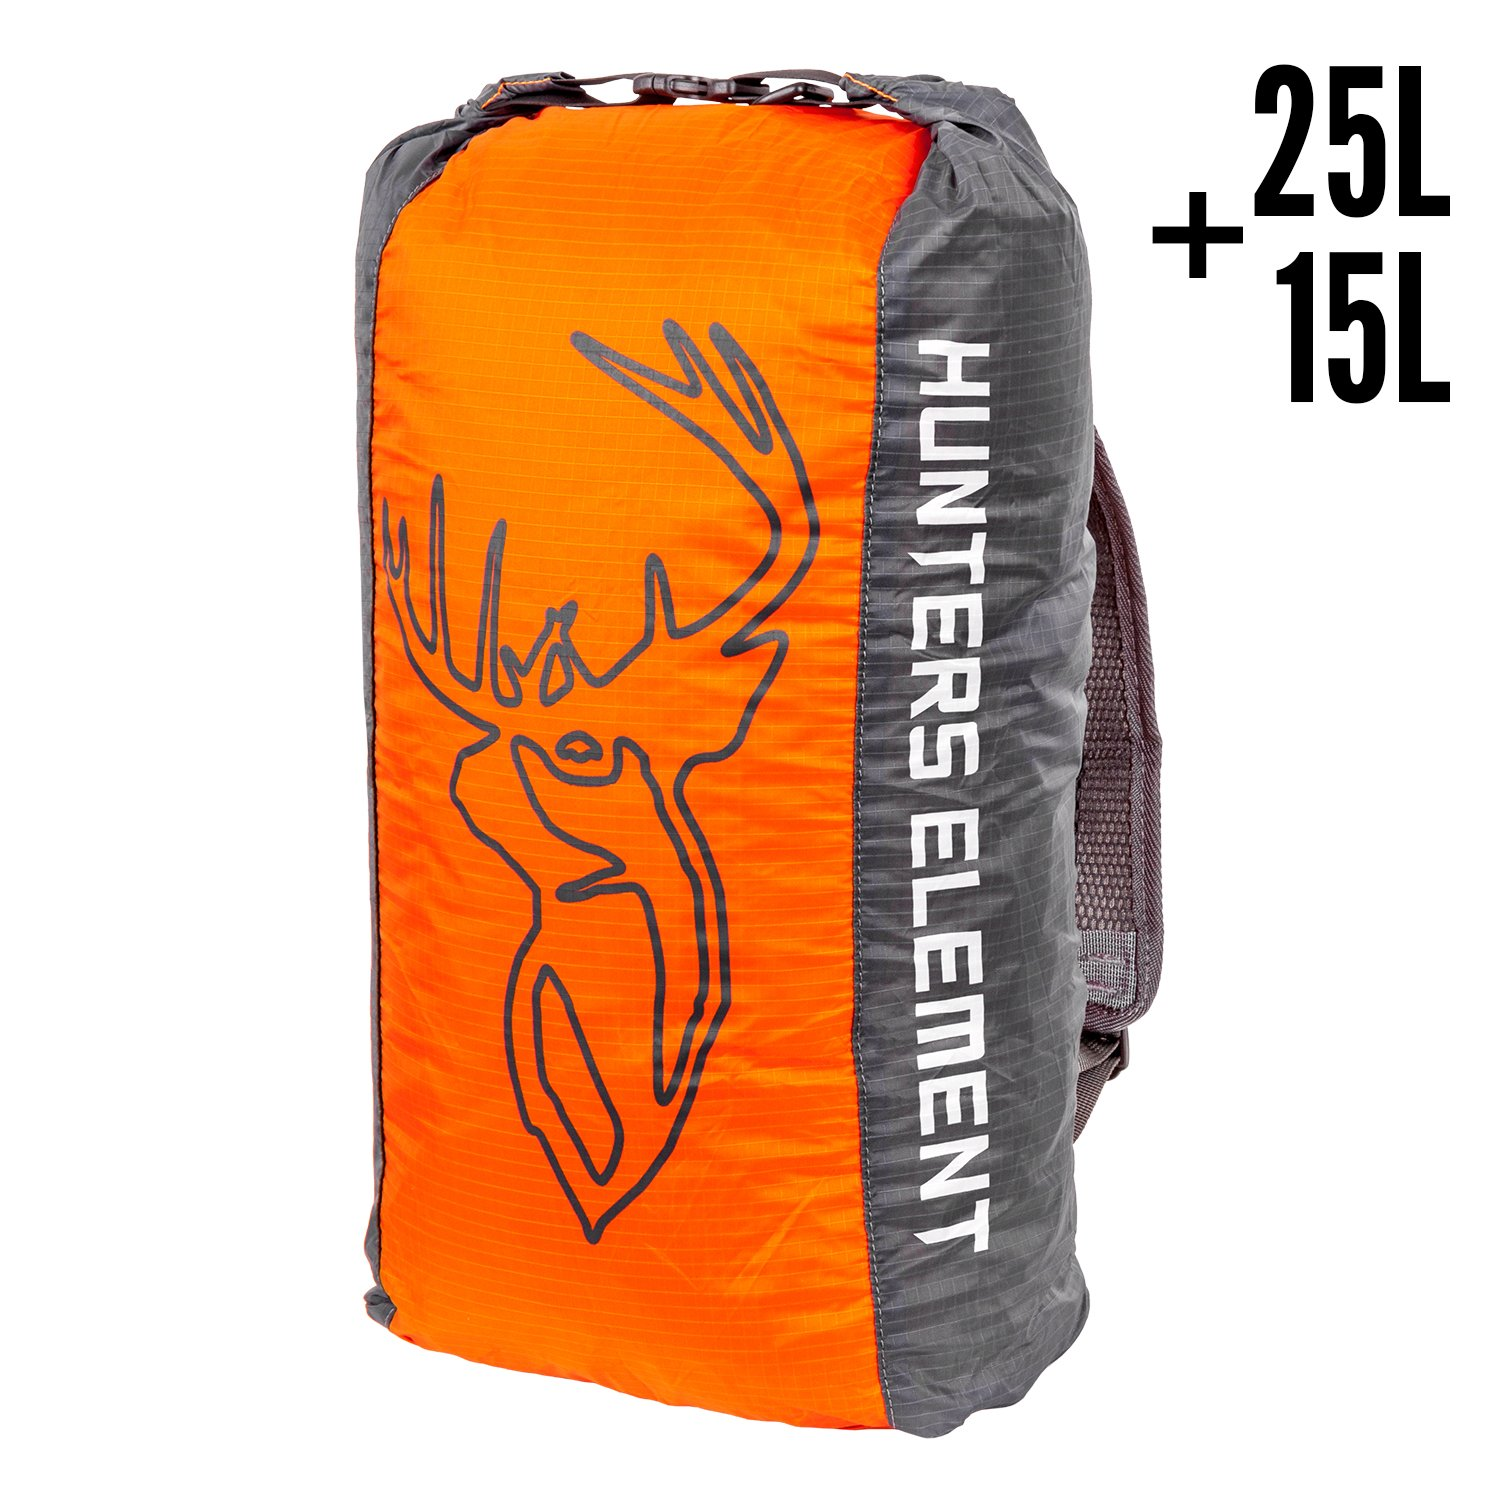 Hunters Element Bluff Packable 15L or 25L Pack